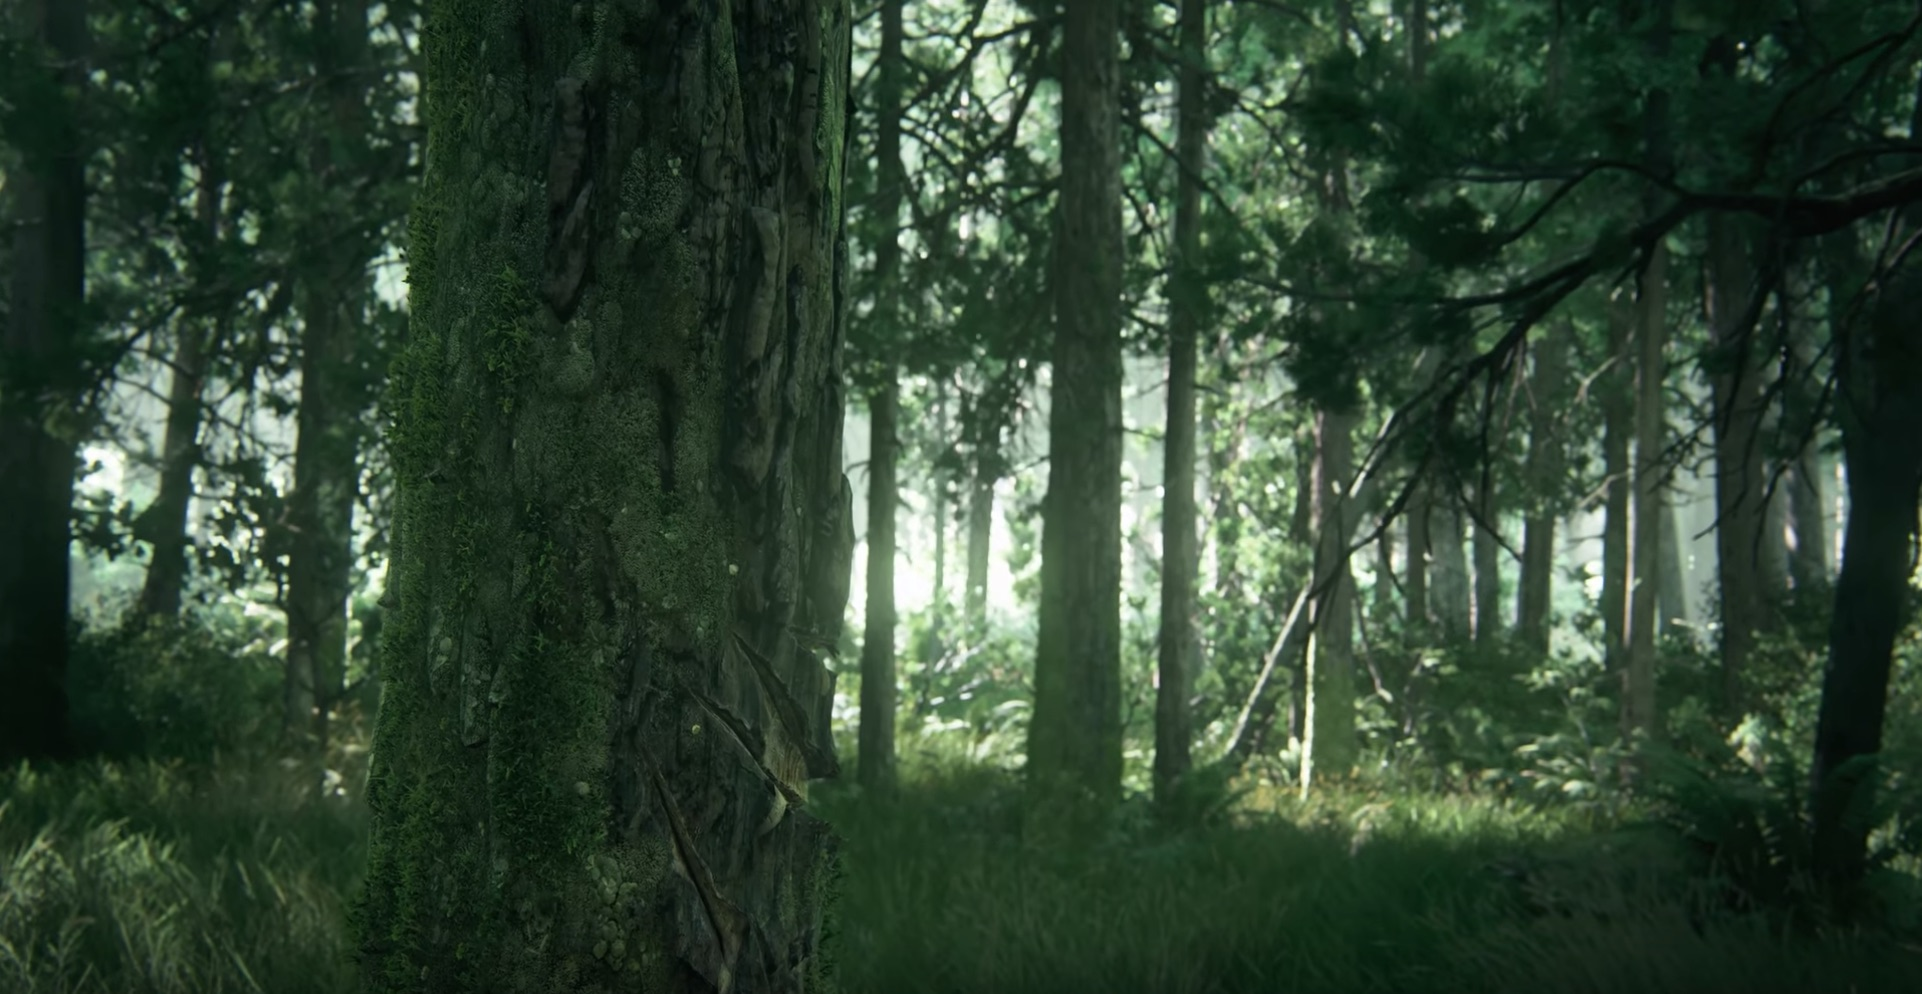 The second shot has a closeup of a tree which is scratched up. This still offers no story or setting details. Is the scratch made by a bear? Is it made by a machine?